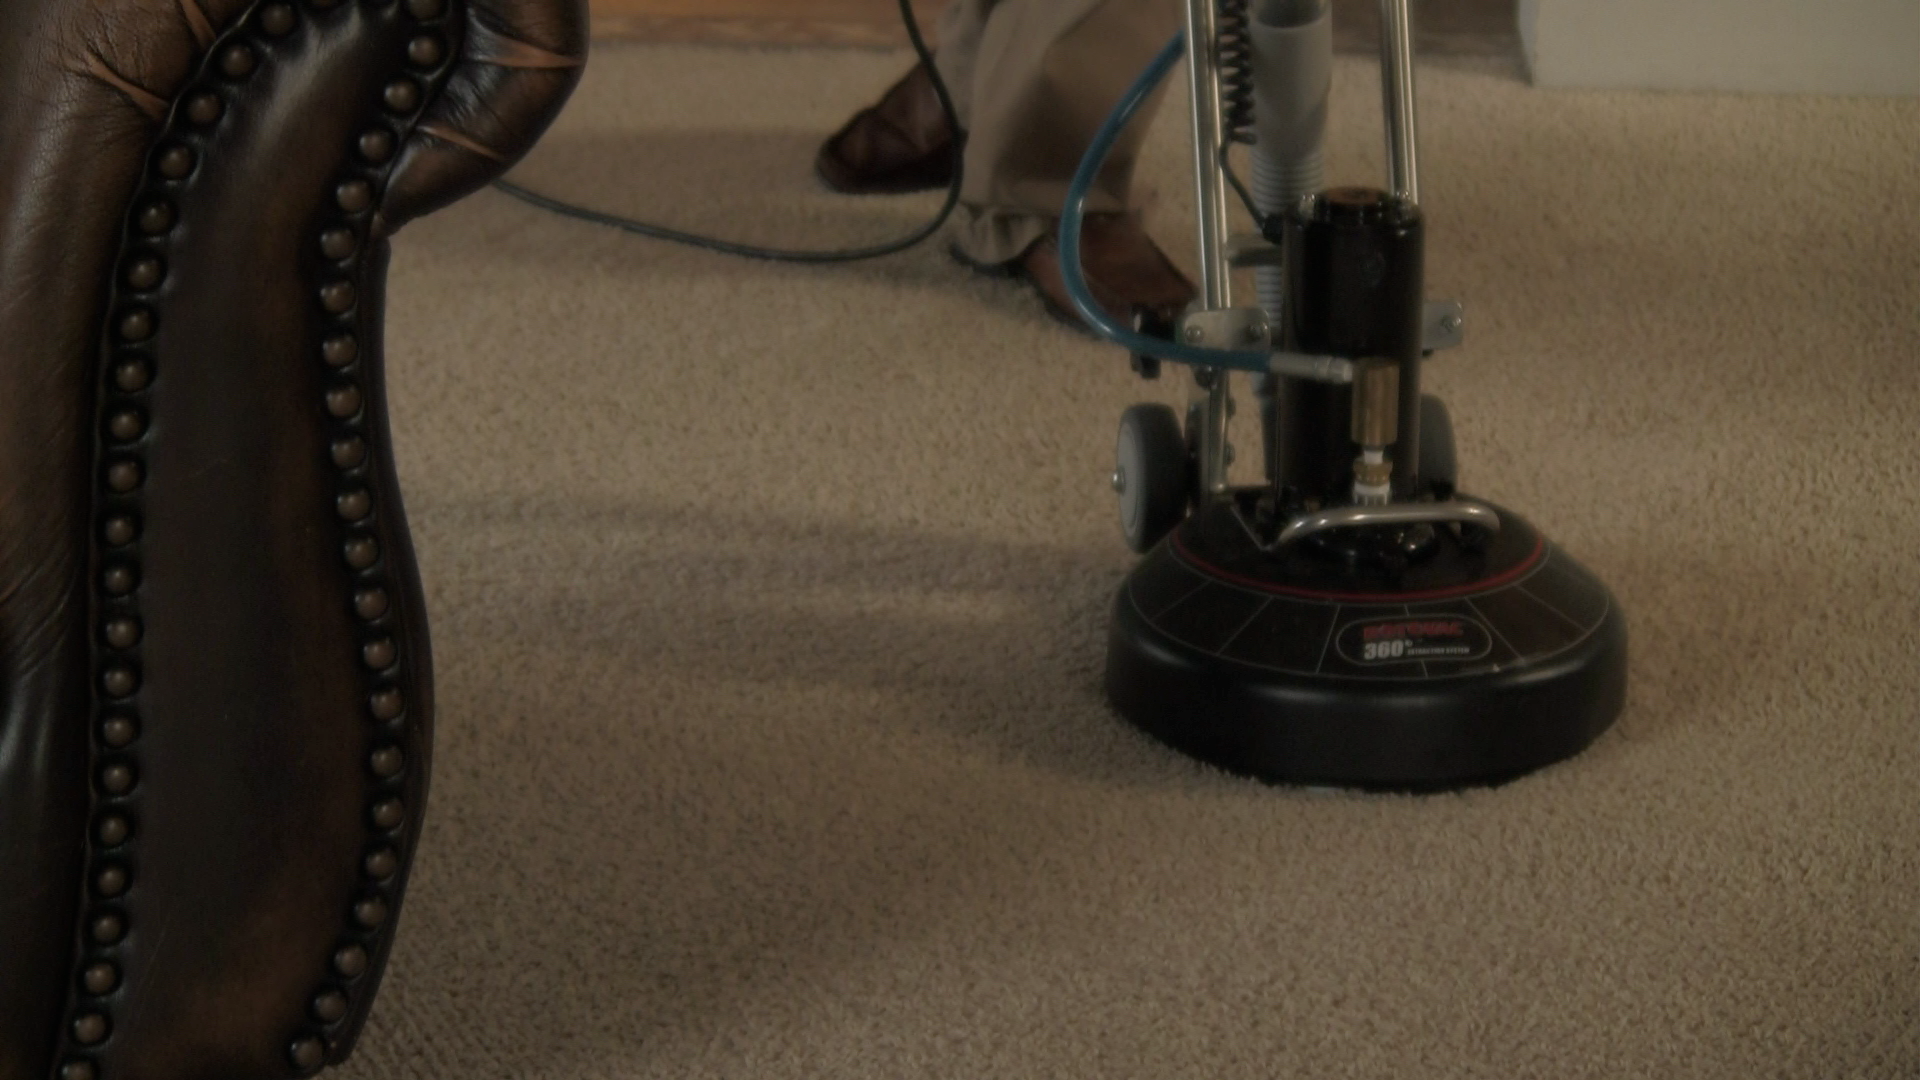 Cleaning your carpets.